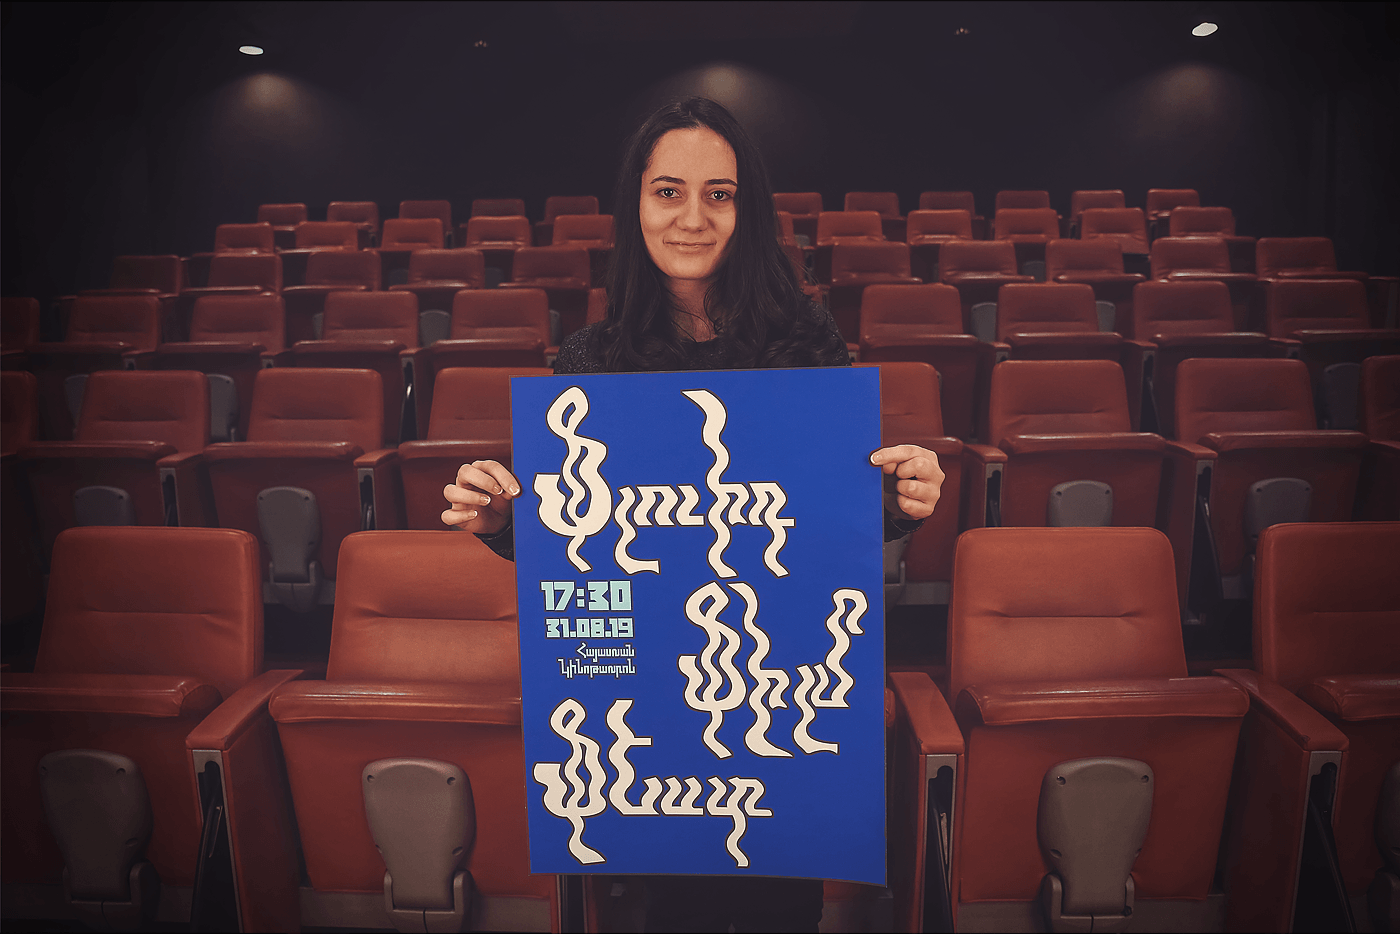 d8d6fc59030567.5a12e43f9be1a - Surface Typography with Gayane Yerkanyan